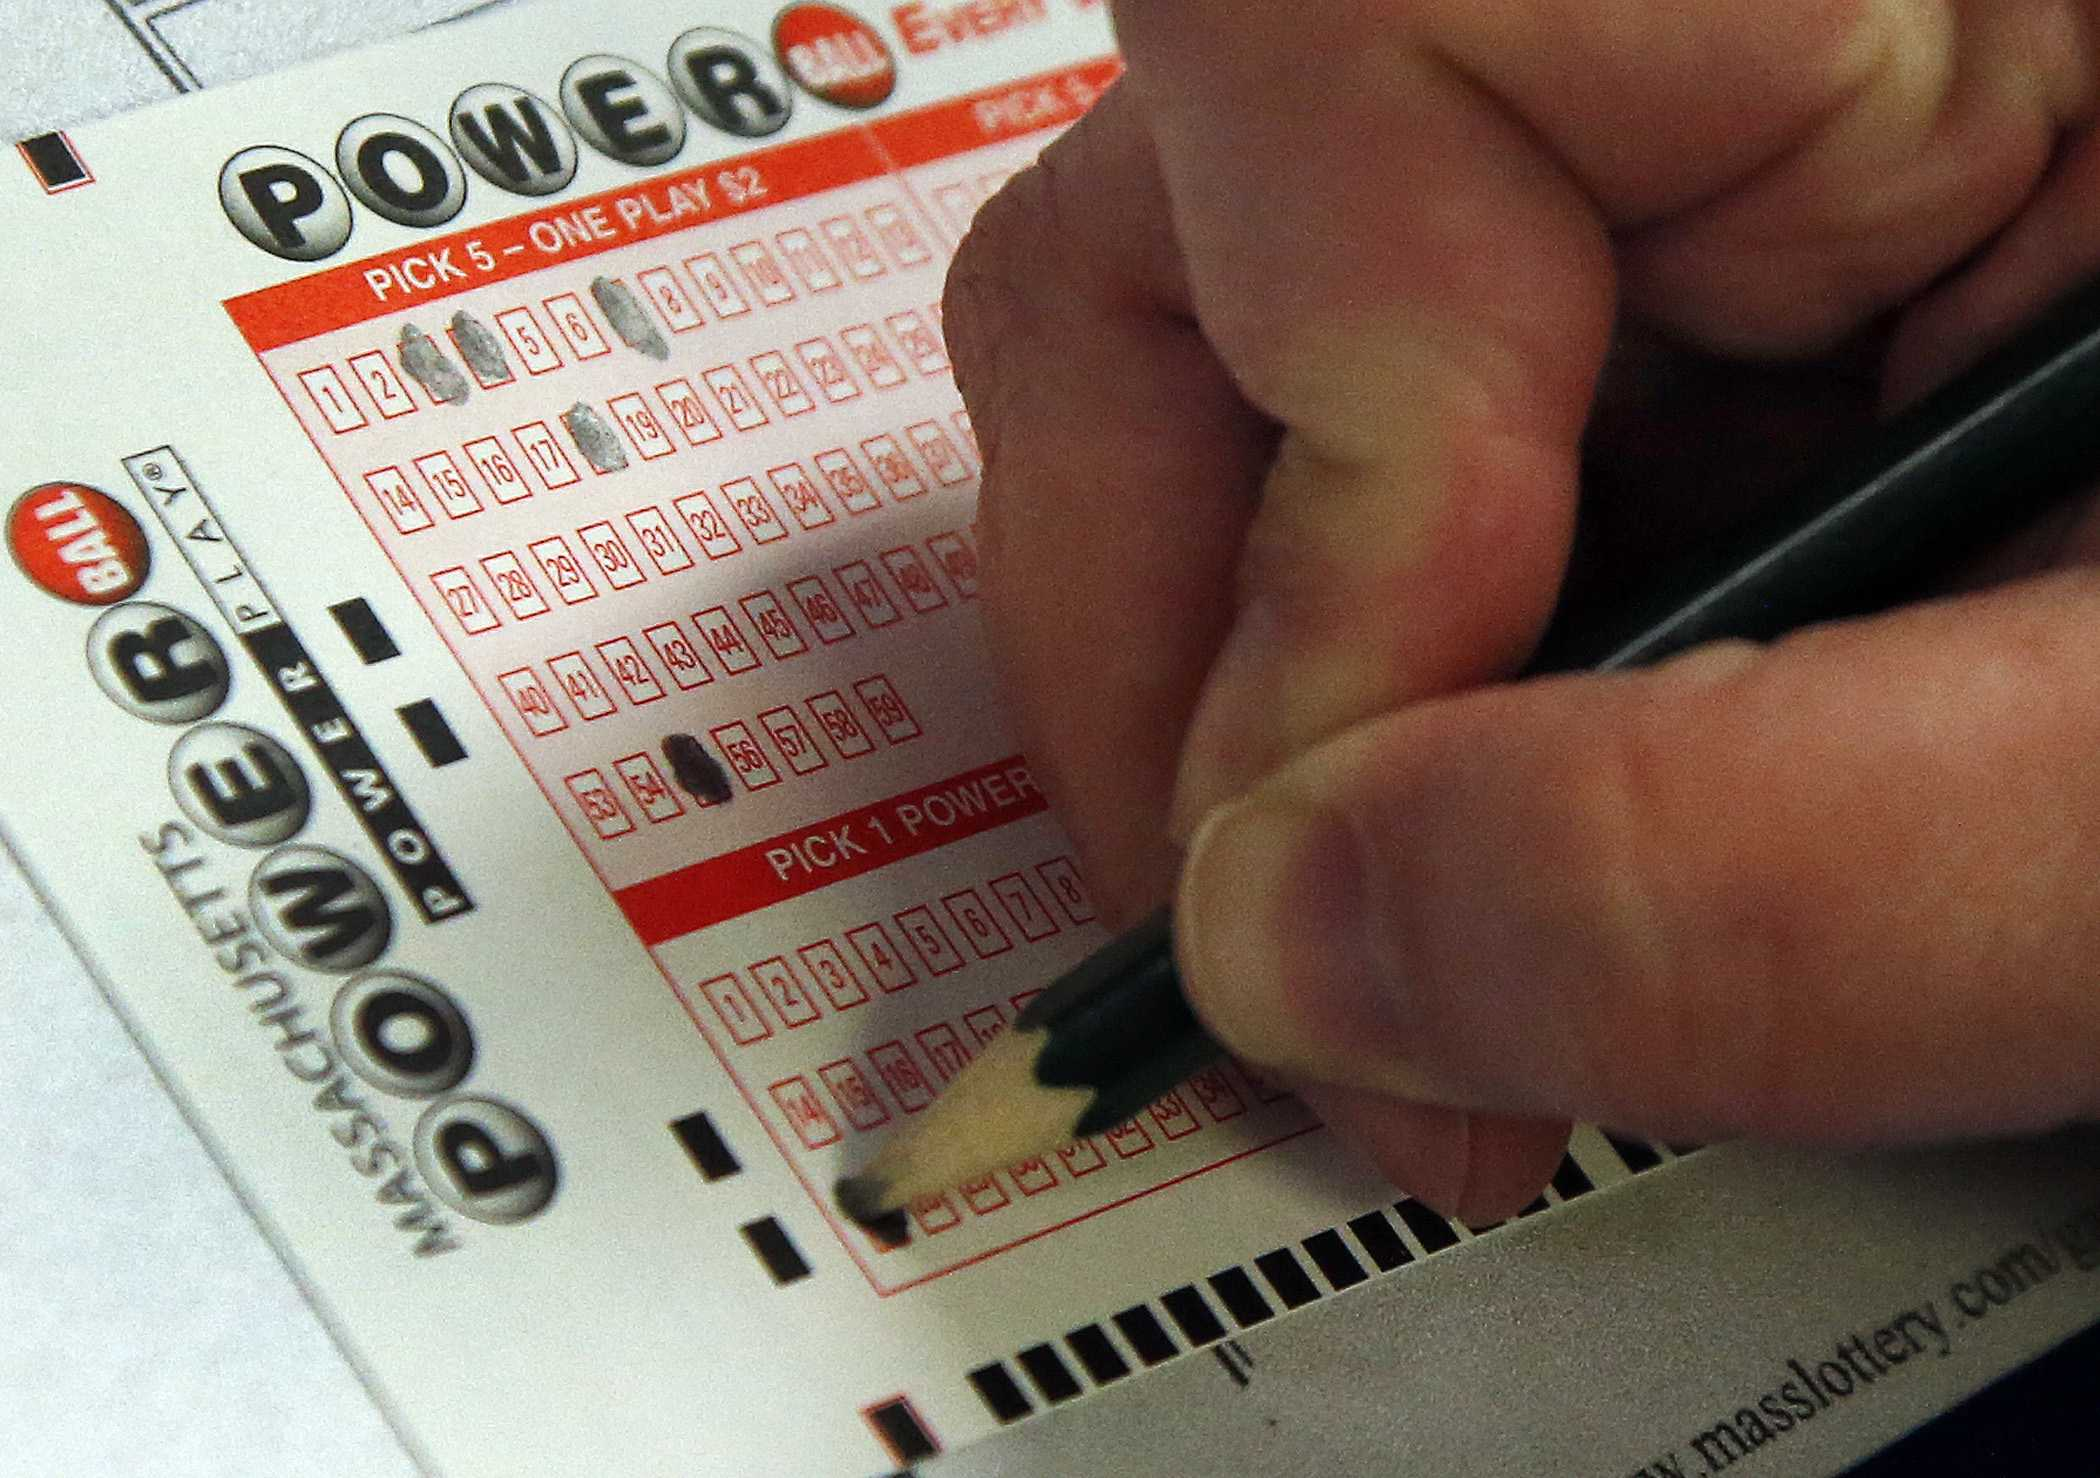 With no Wednesday victor, Powerball jackpot grows